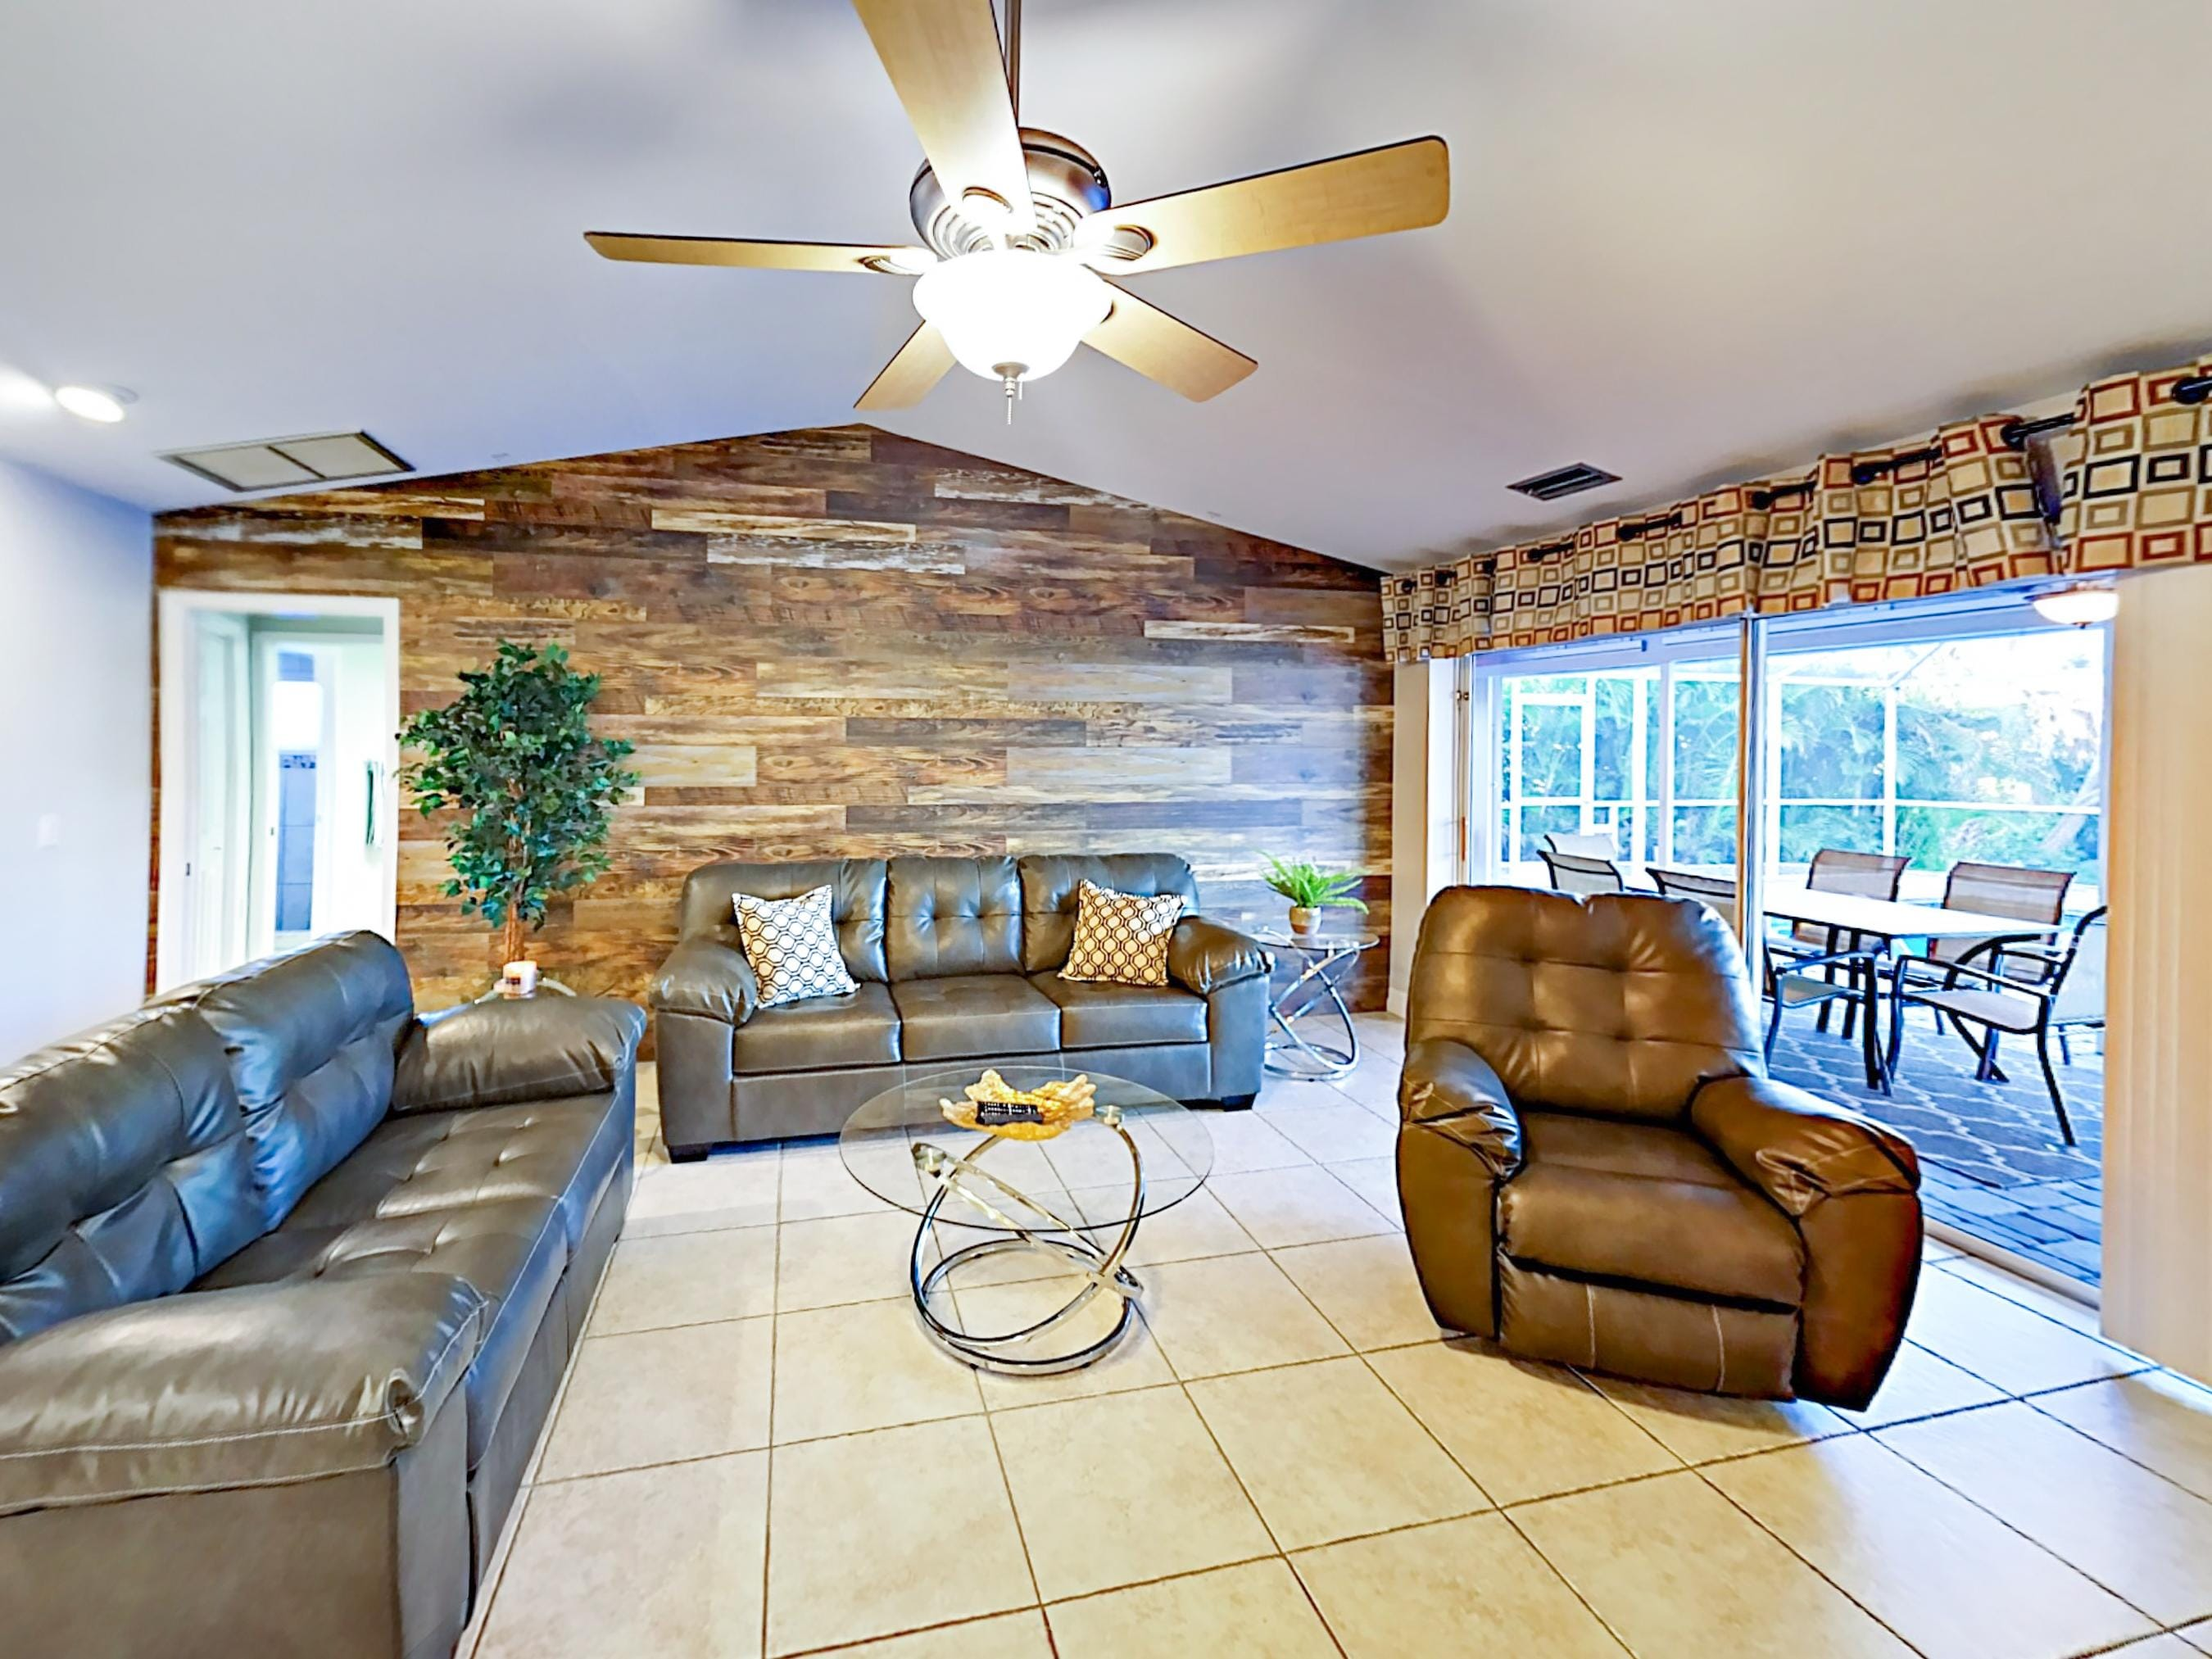 The living room features a wood accent wall and provides direct access to the patio.